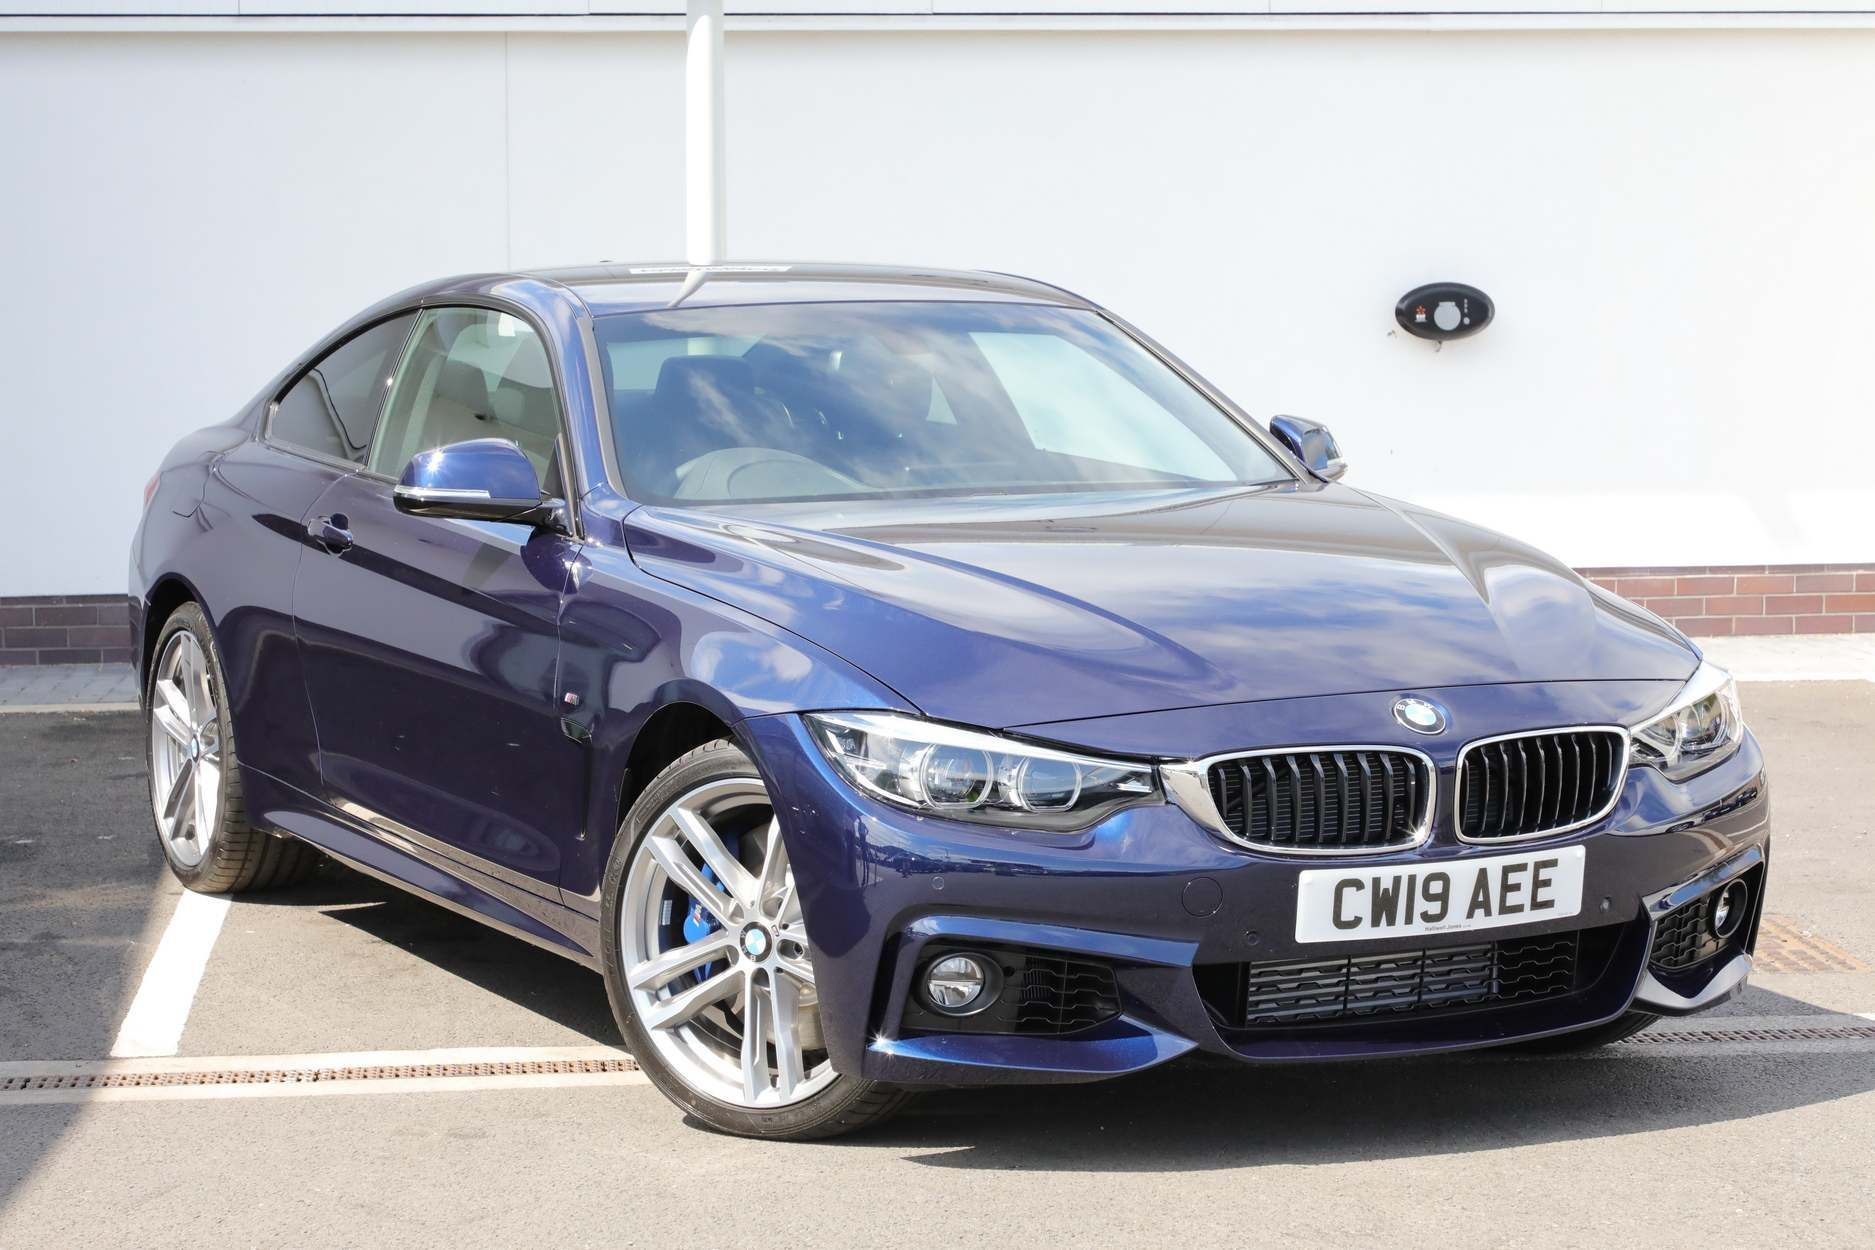 Image 1 - BMW 435d xDrive M Sport Coupe (CW19AEE)